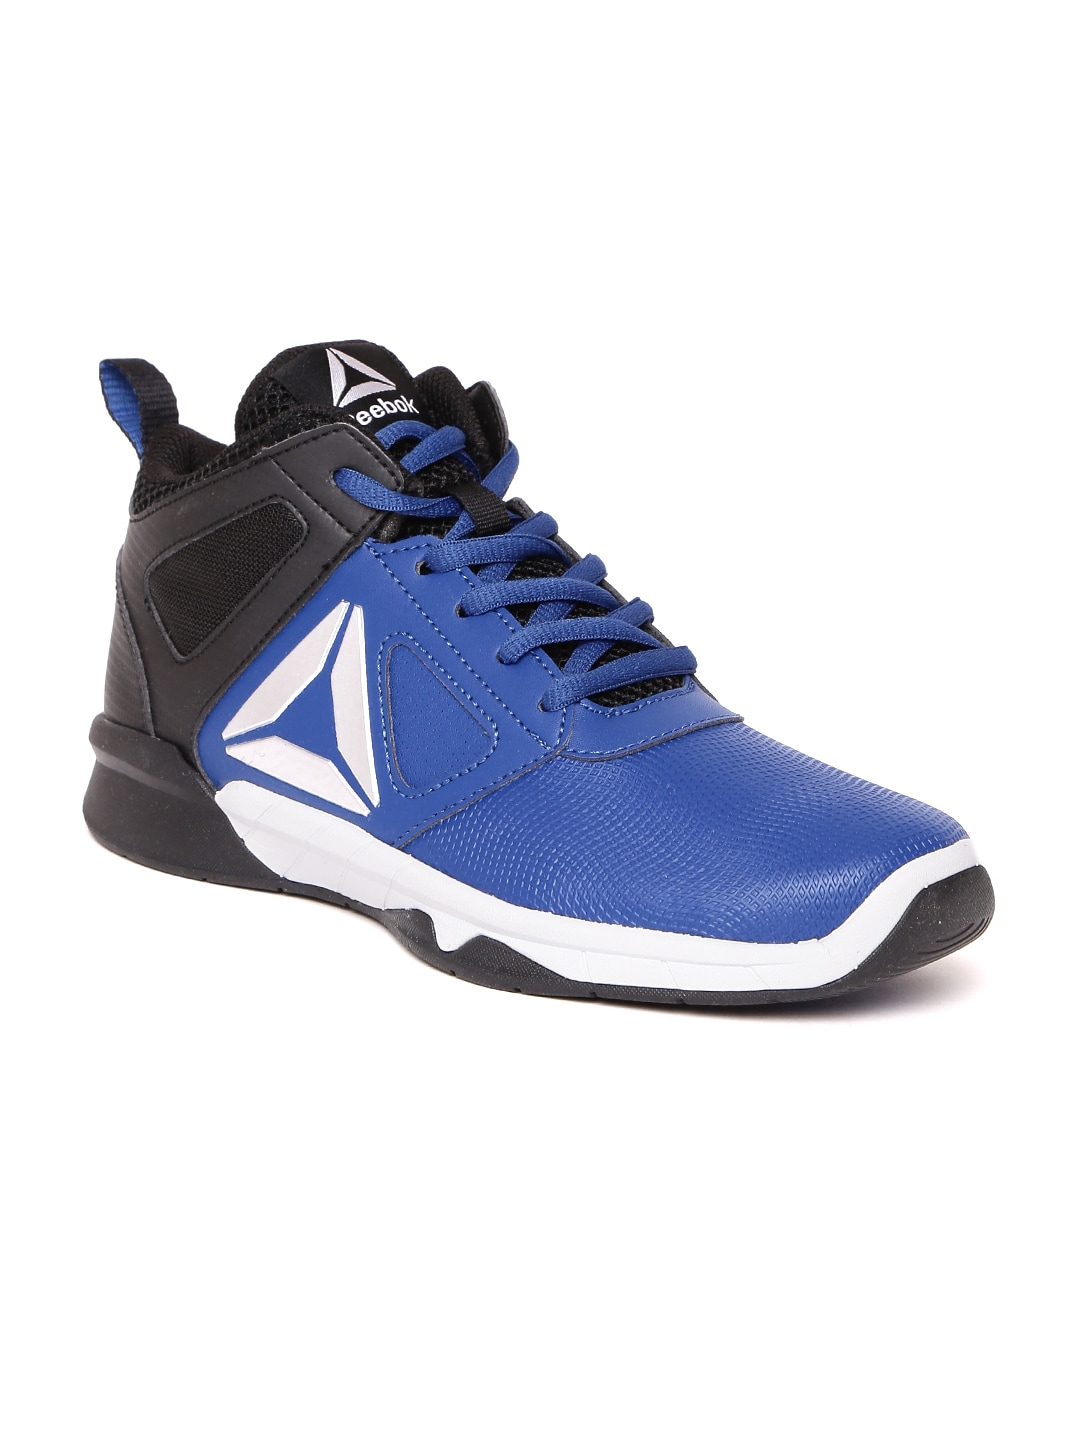 ab8657a5f8c5 Reebok Basketball Shoes - Buy Reebok Basketball Shoes Online in India